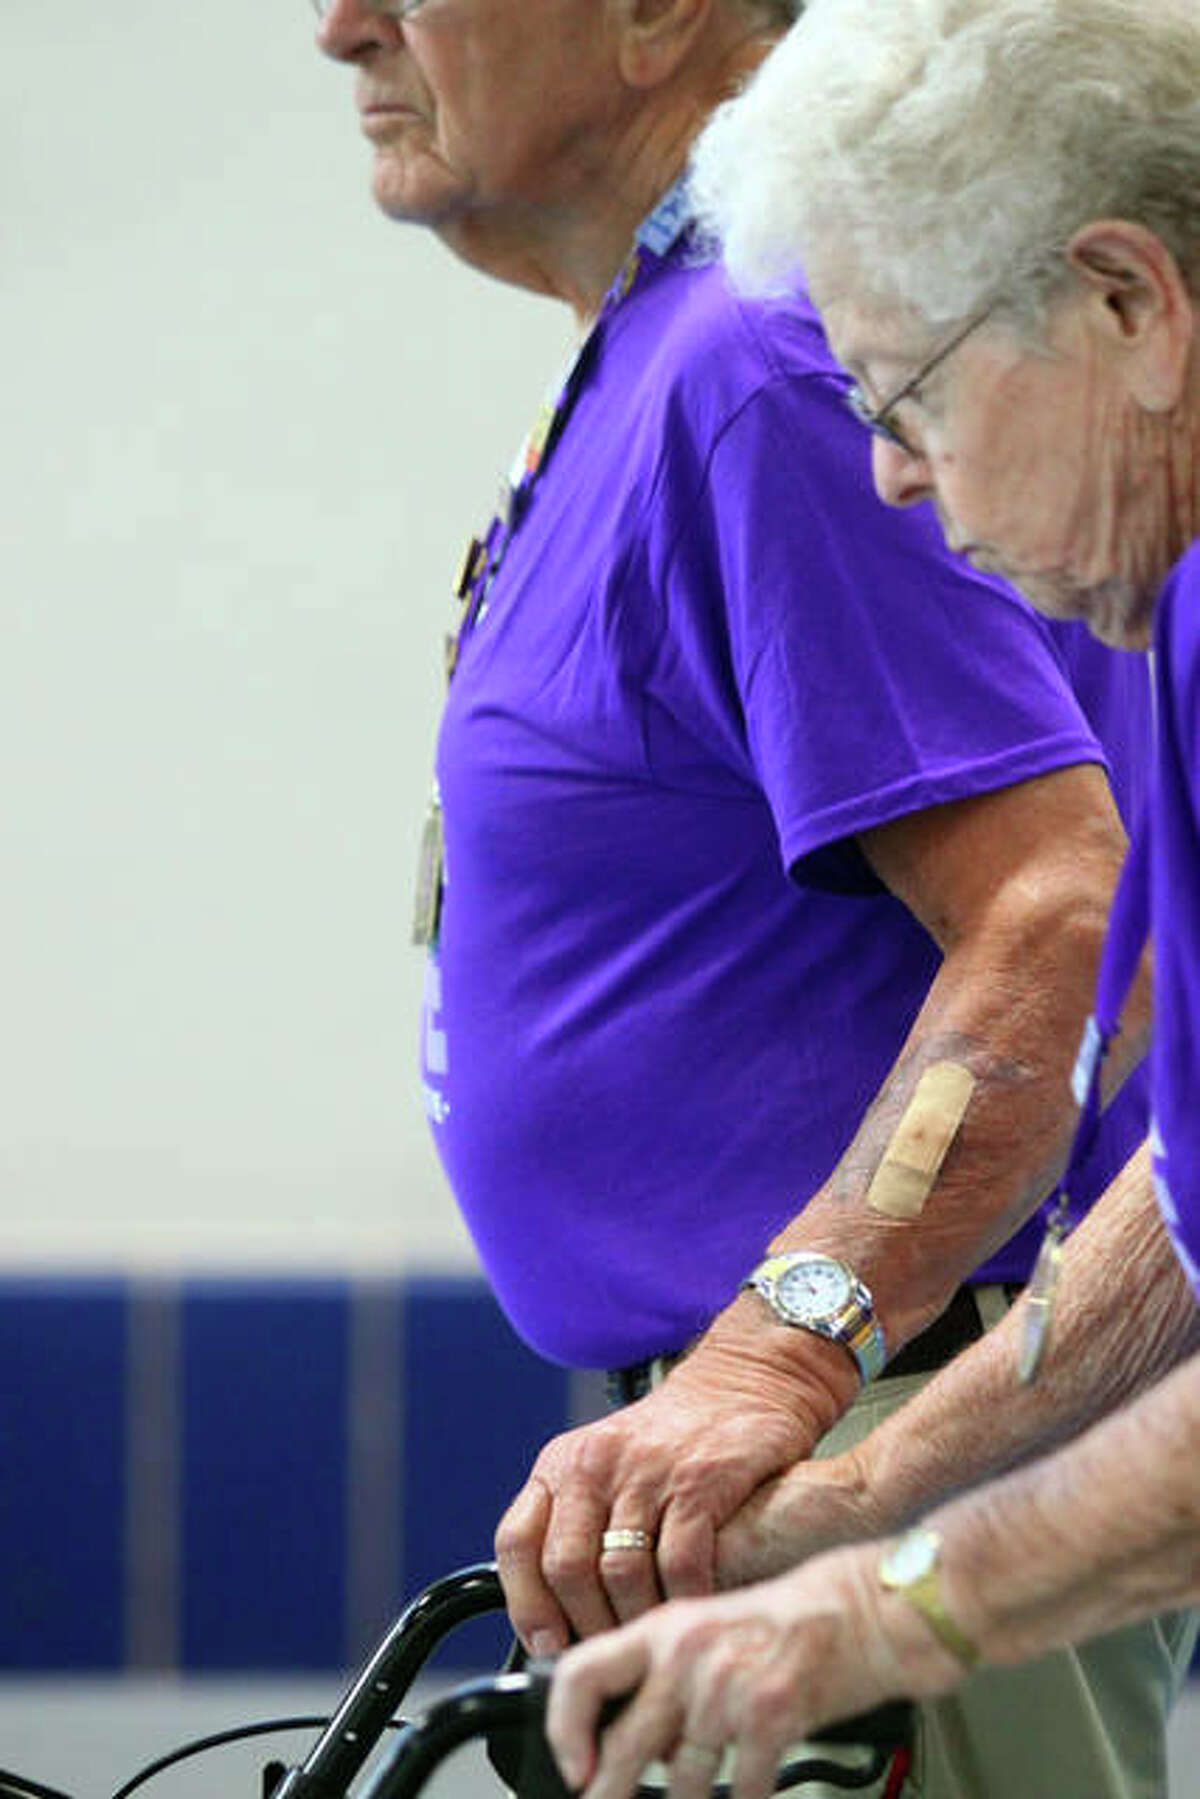 Relay for Life of Tri County raised more than $5,000 Saturday. It has raised close to $28,000 of its $55,000 goal for 2019. The event was held at the Bruner Fitness and Recreational Center on the Illinois College campus.